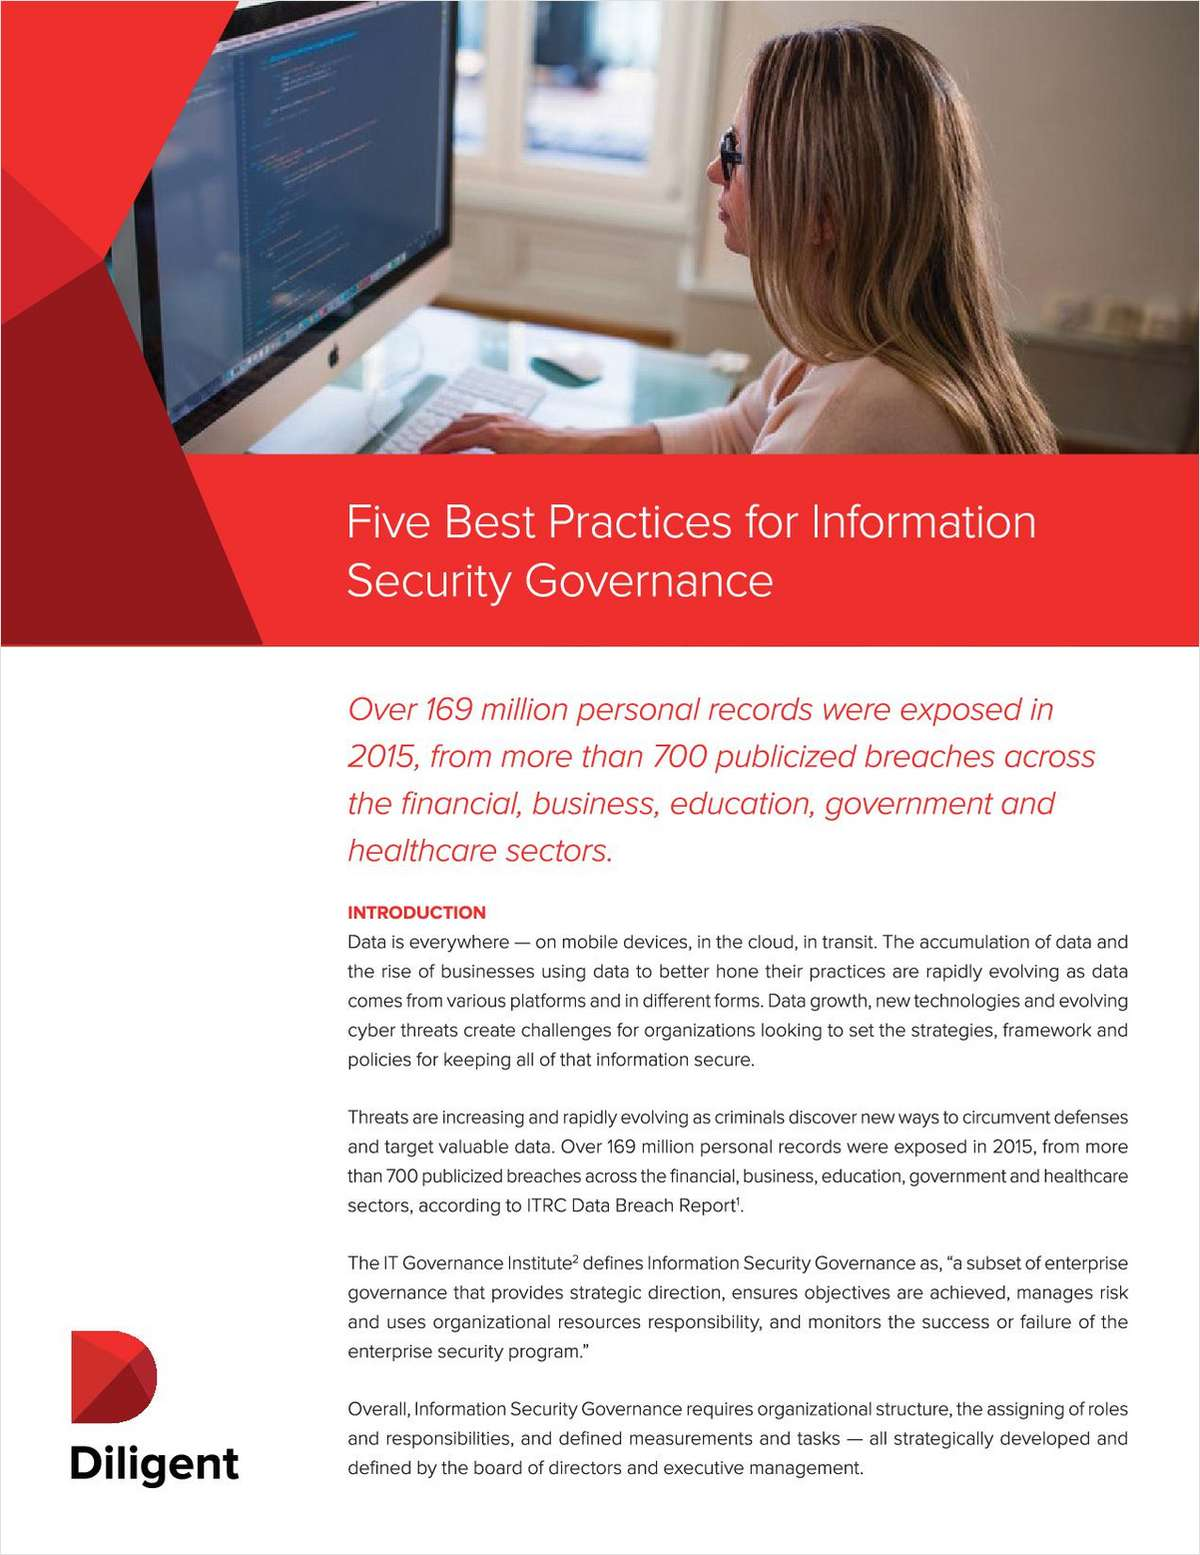 5 Best Practices for Information Security Governance